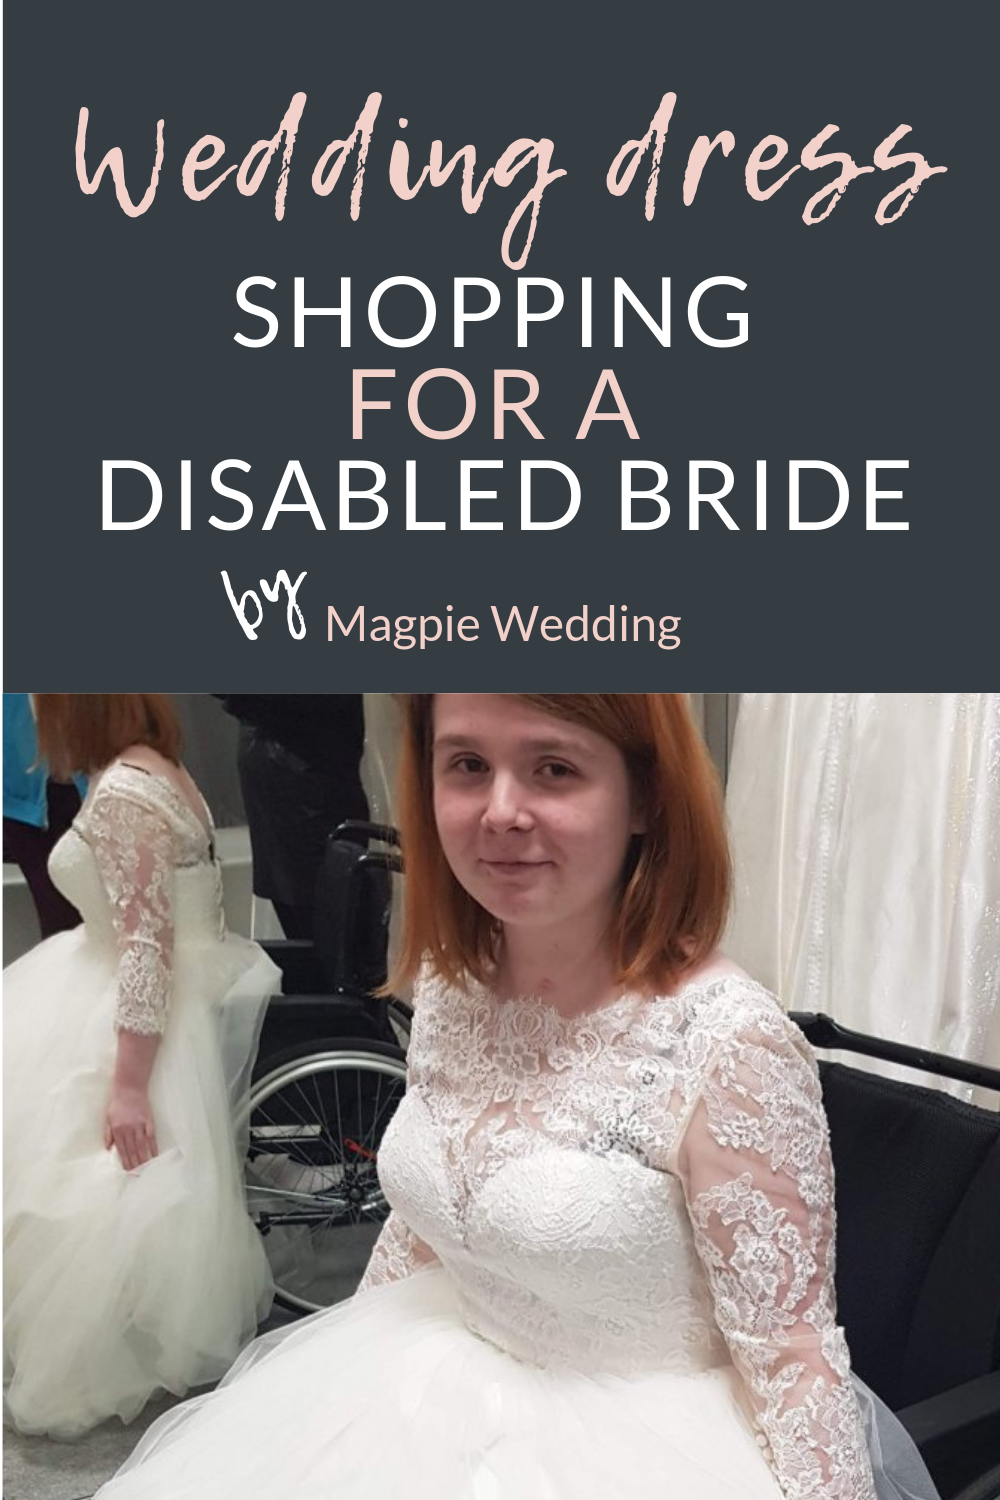 Wedding Dress shopping for a disabled bride - plus what boutiques need to know